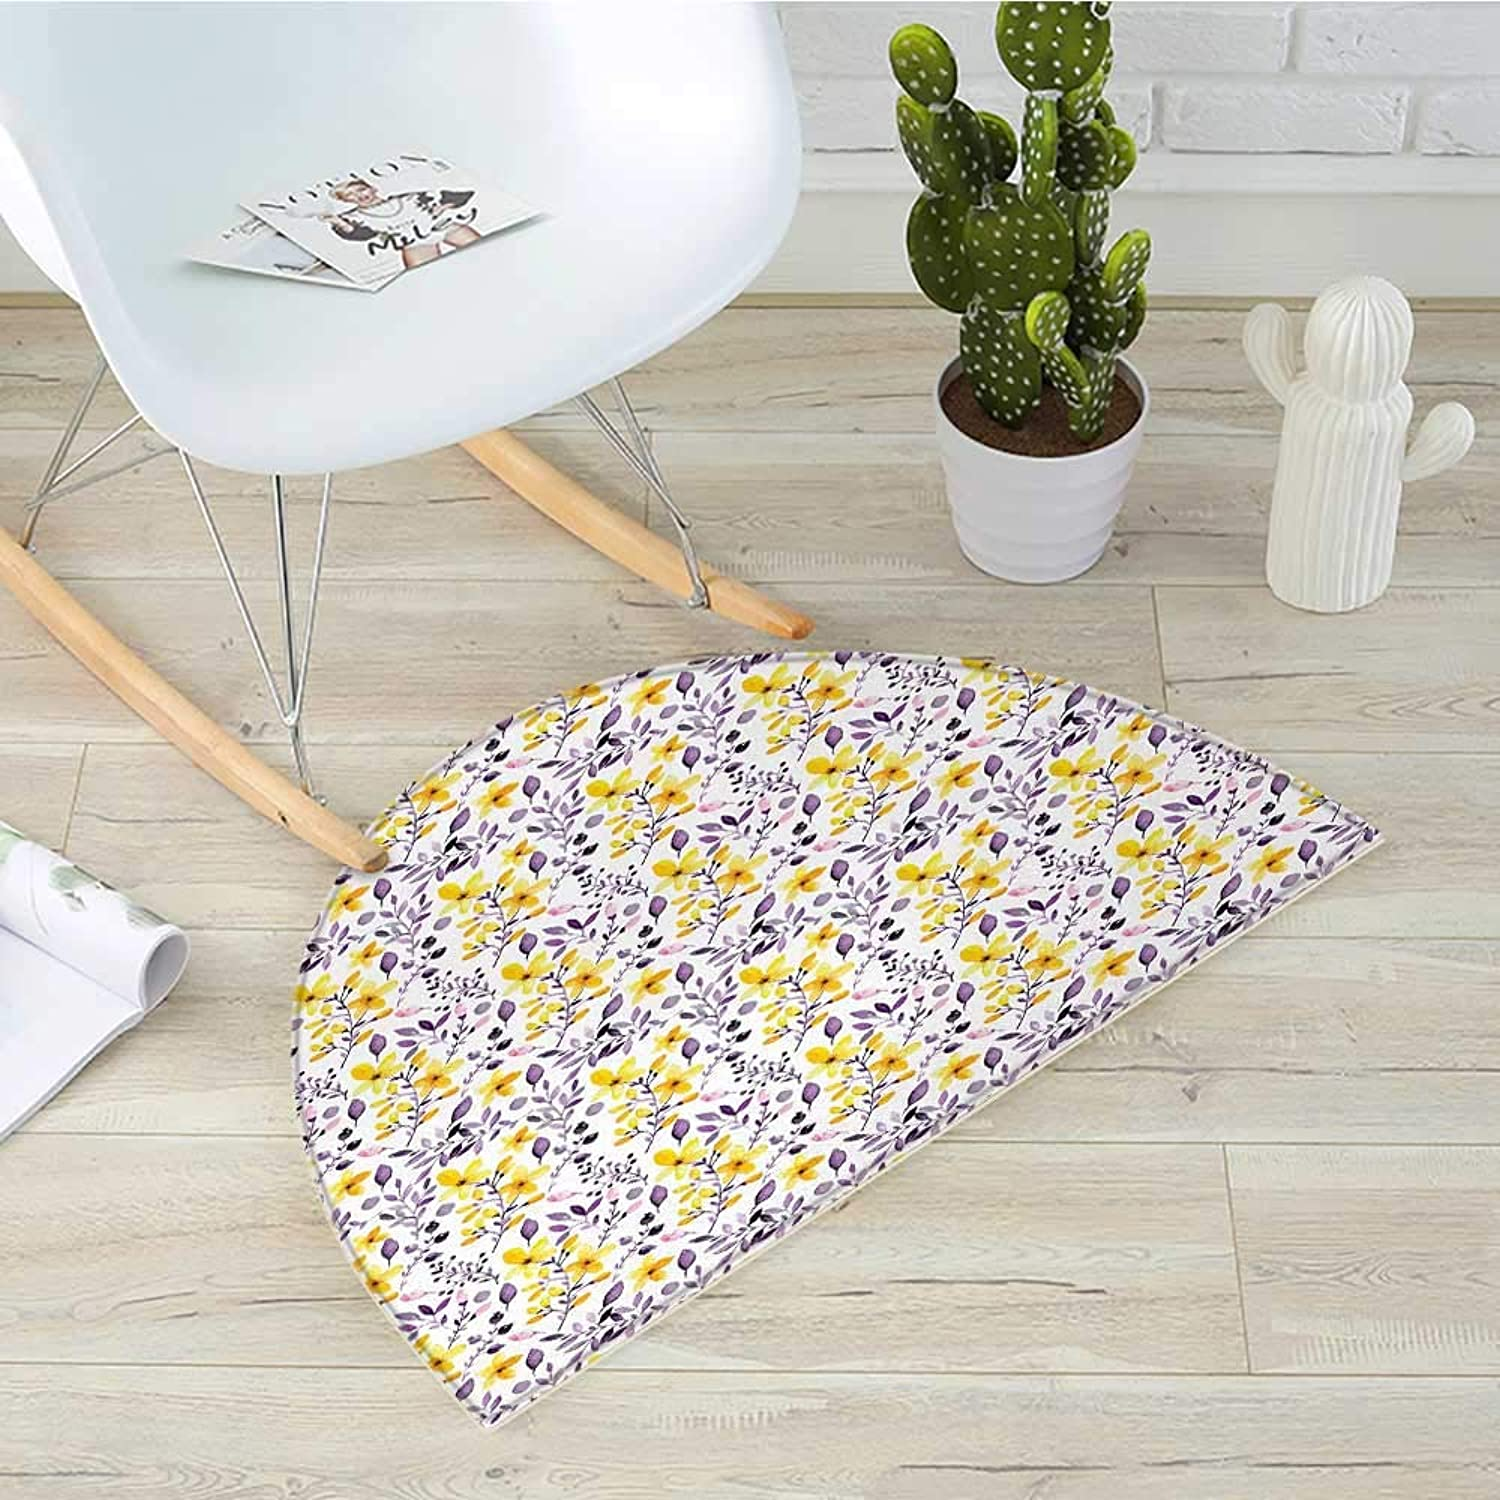 Flower Semicircle Doormat Pattern with Flowers and Leaves Seedling Foliage Spring Rural Artsy Print Halfmoon doormats H 39.3  xD 59  Yellow Purple White